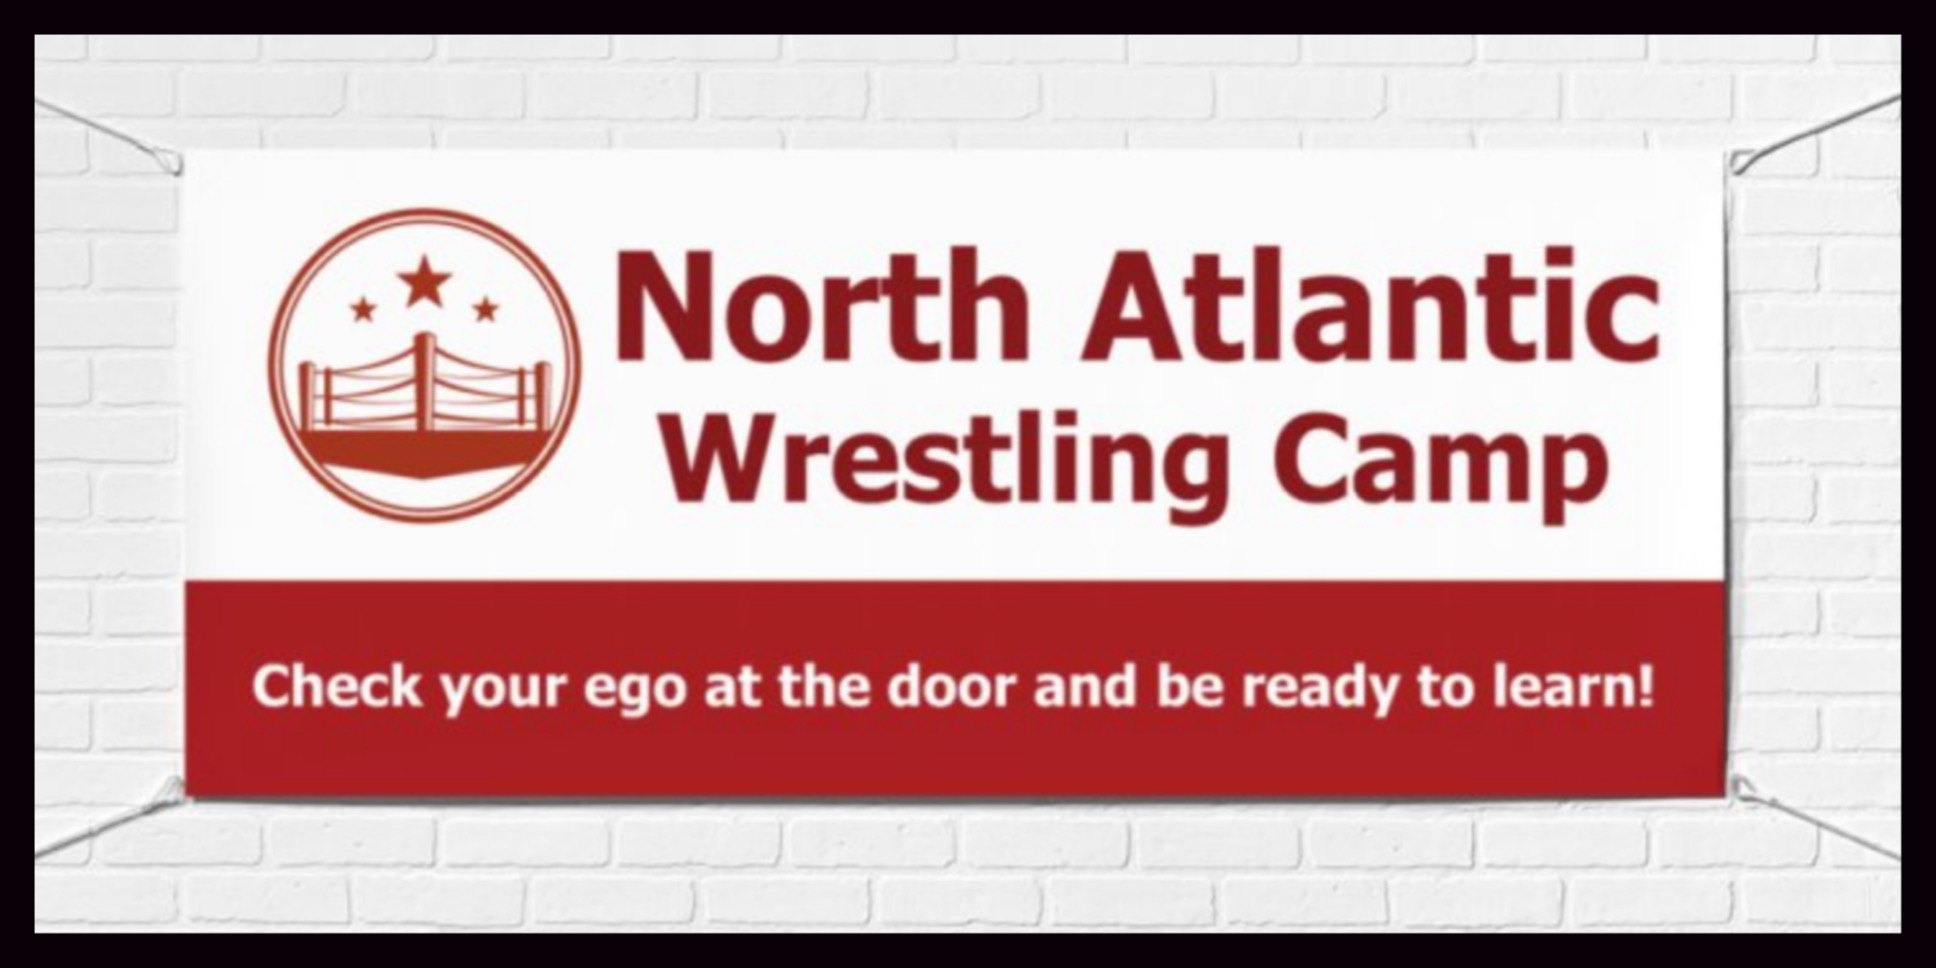 North Atlantic Wrestling Camp